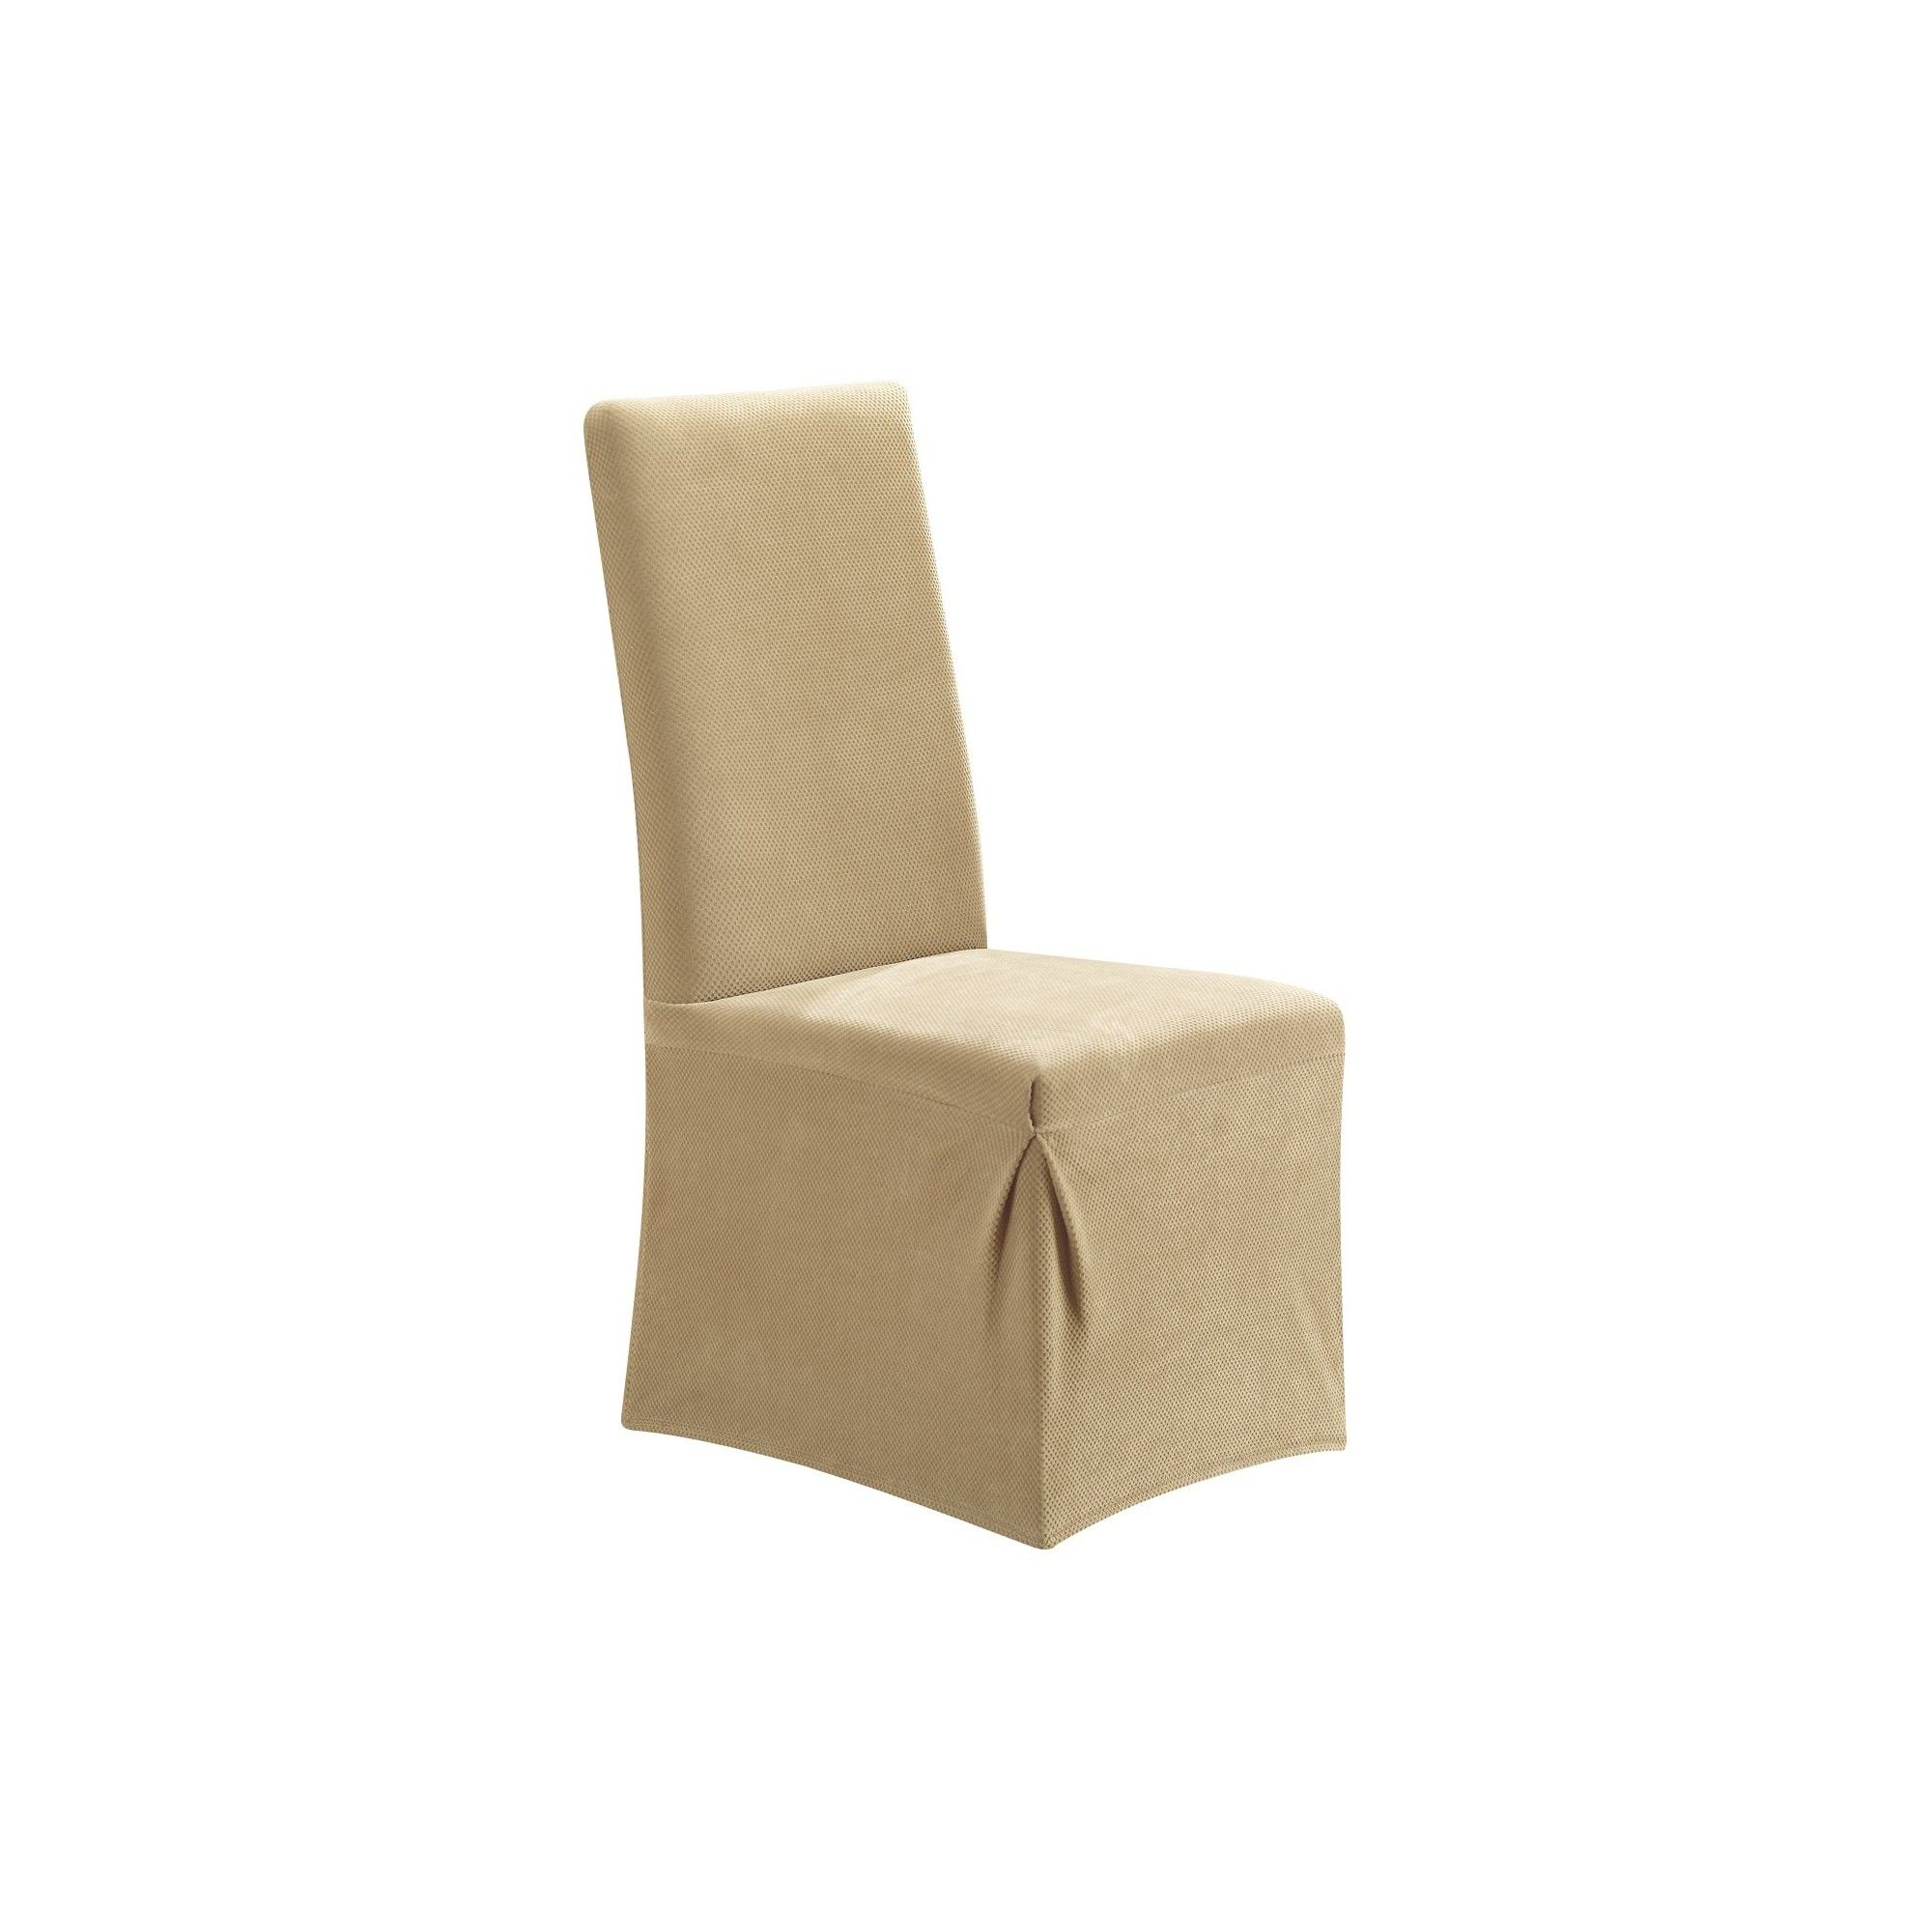 Stretch Pique Long Dining Room Chair Slipcover Cream Ivory Magnificent Stretch Covers For Dining Room Chairs Design Inspiration